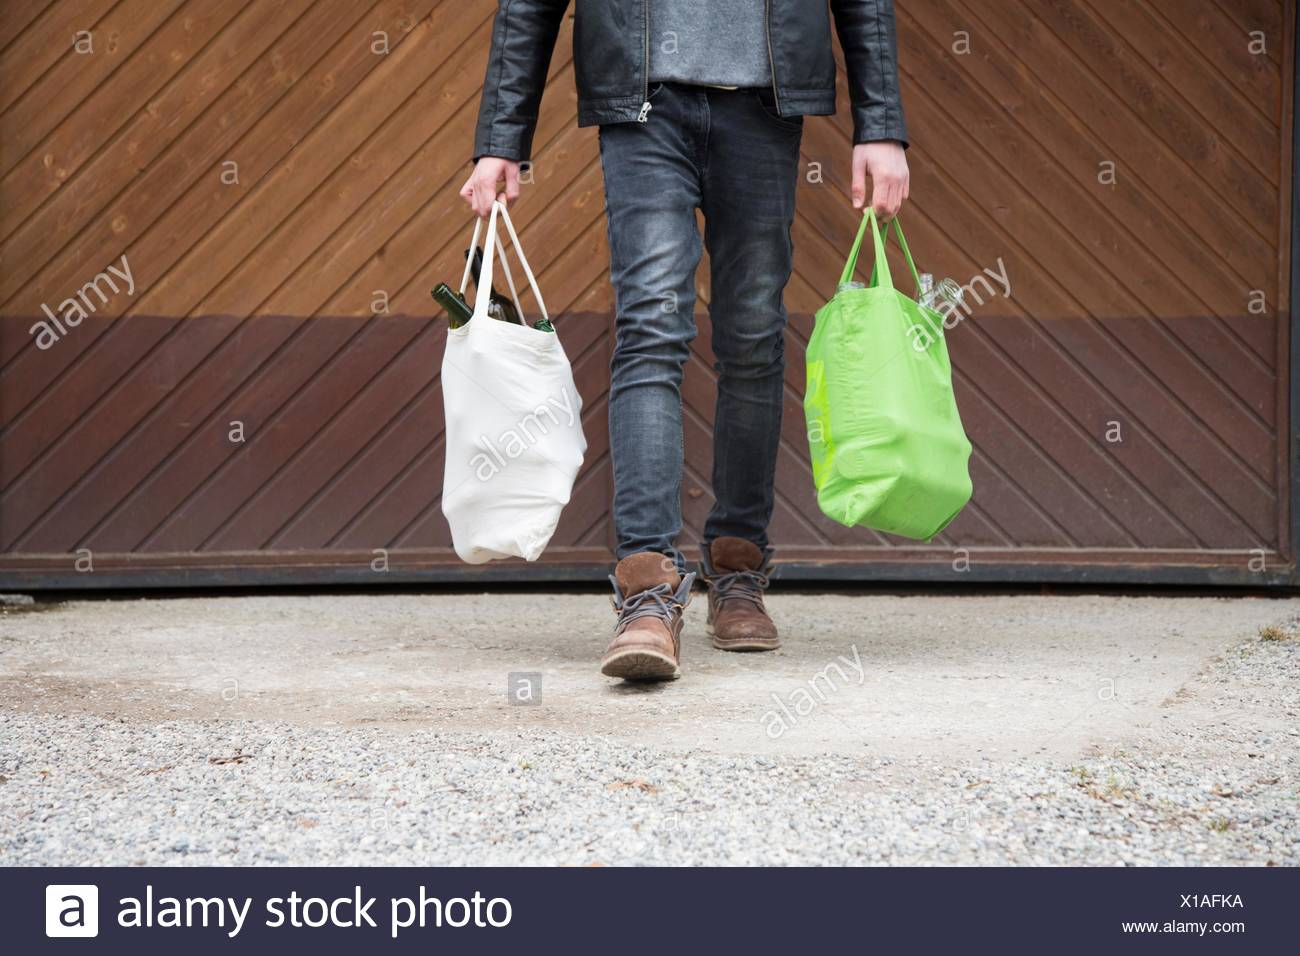 Teenage boy carrying reusable shopping bags full of empty bottles for recycling - Stock Image